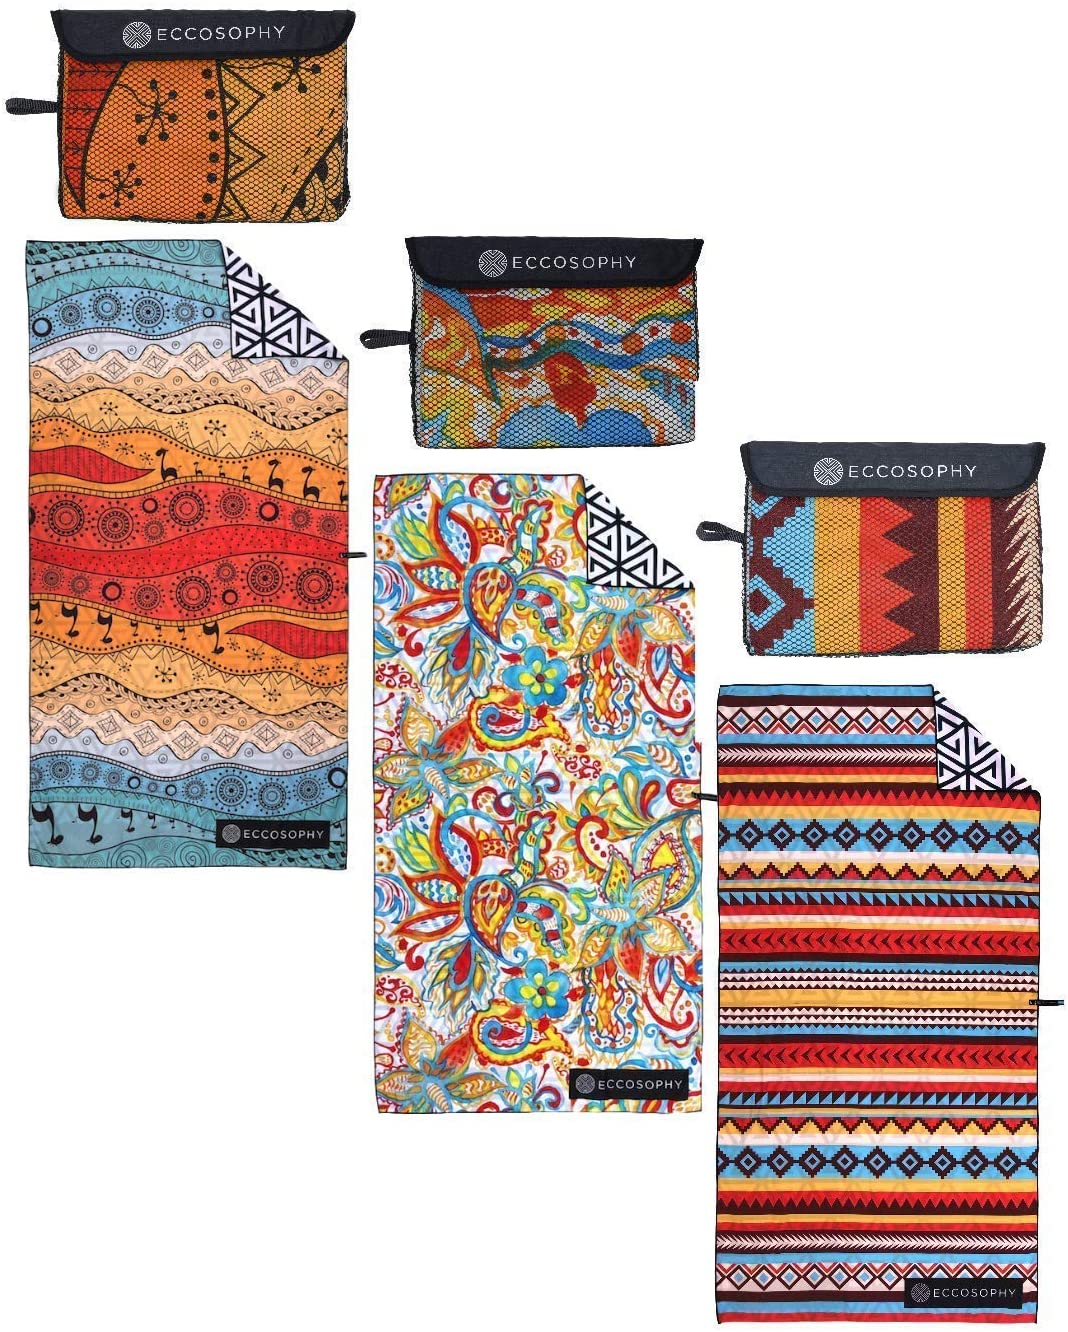 ECCOSOPHY Beach Towels- Sunset by The Sea Collection Includes 3 Quick Dry, Sand Proof Microfiber Beach Towels